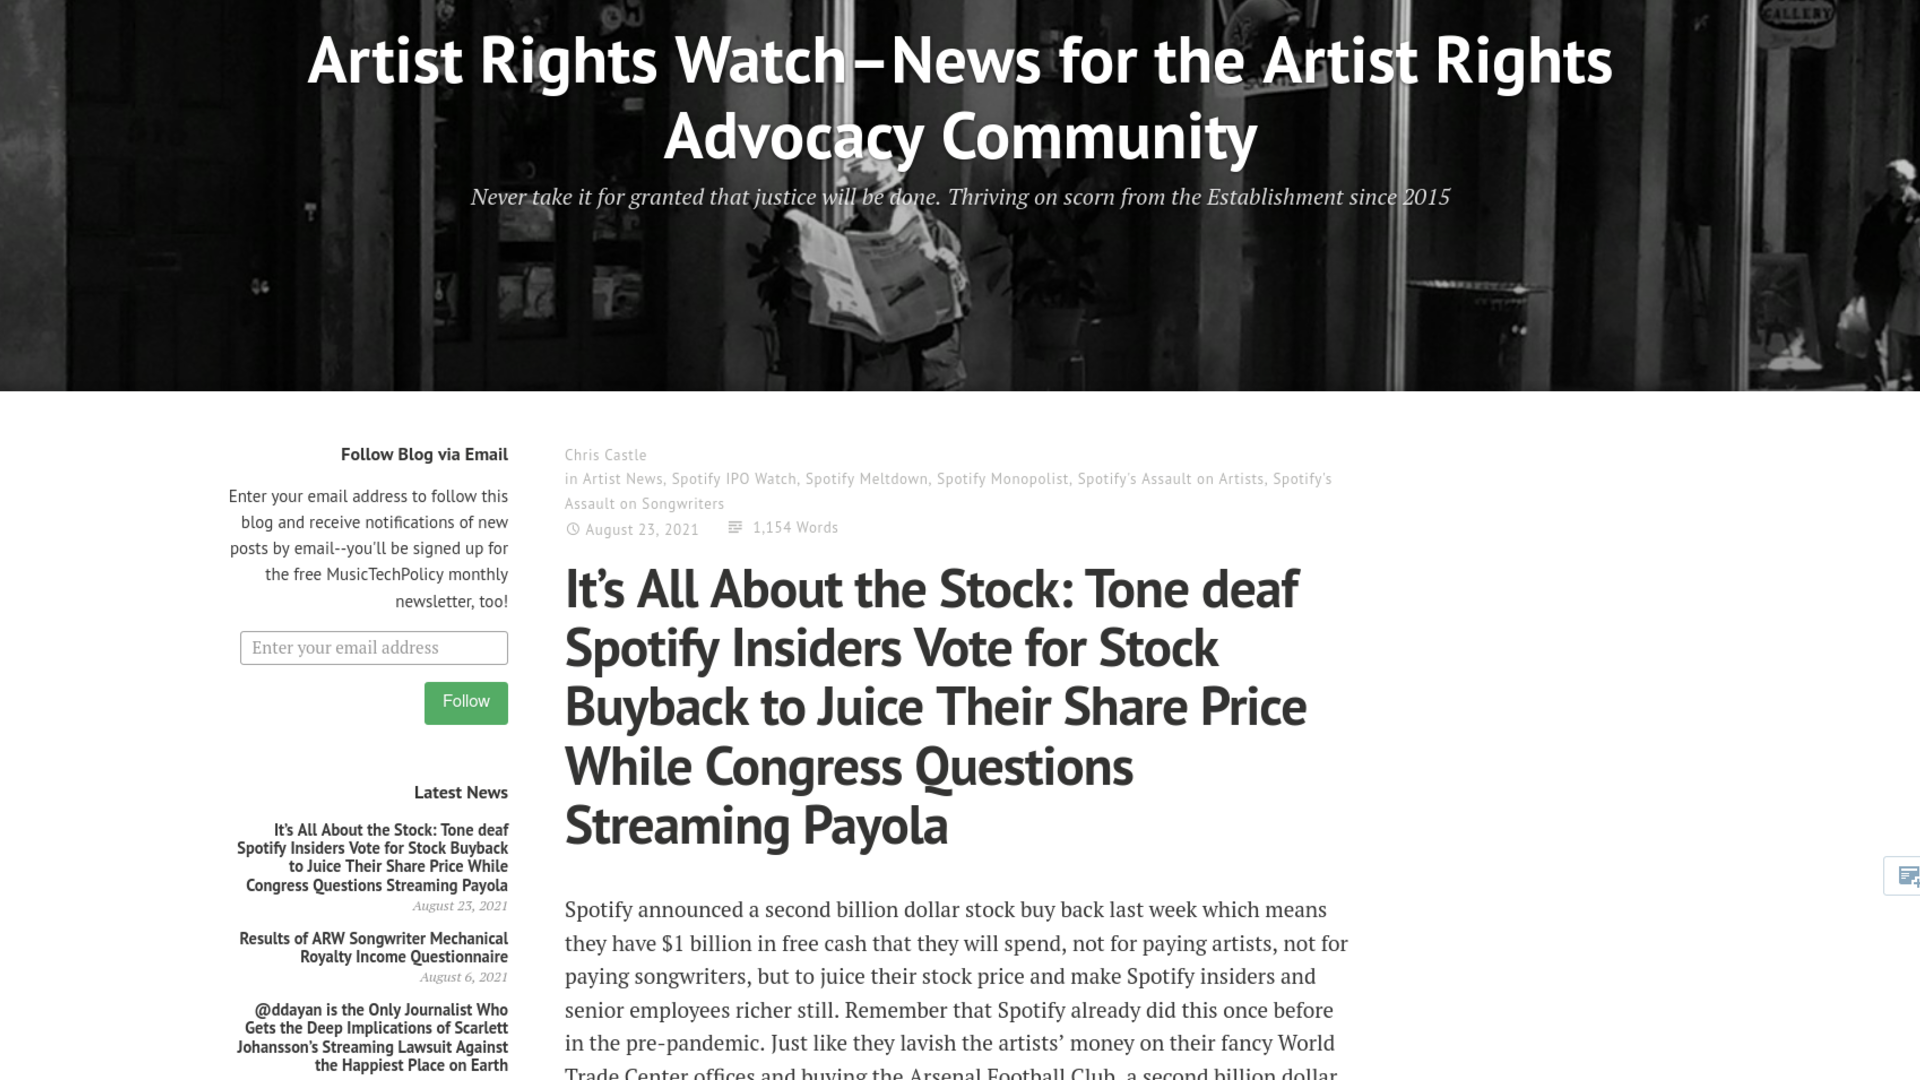 Fairness Rocks News It's All About the Stock: Tone deaf Spotify Insiders Vote for Stock Buyback to Juice Their Share Price While Congress Questions Streaming Payola